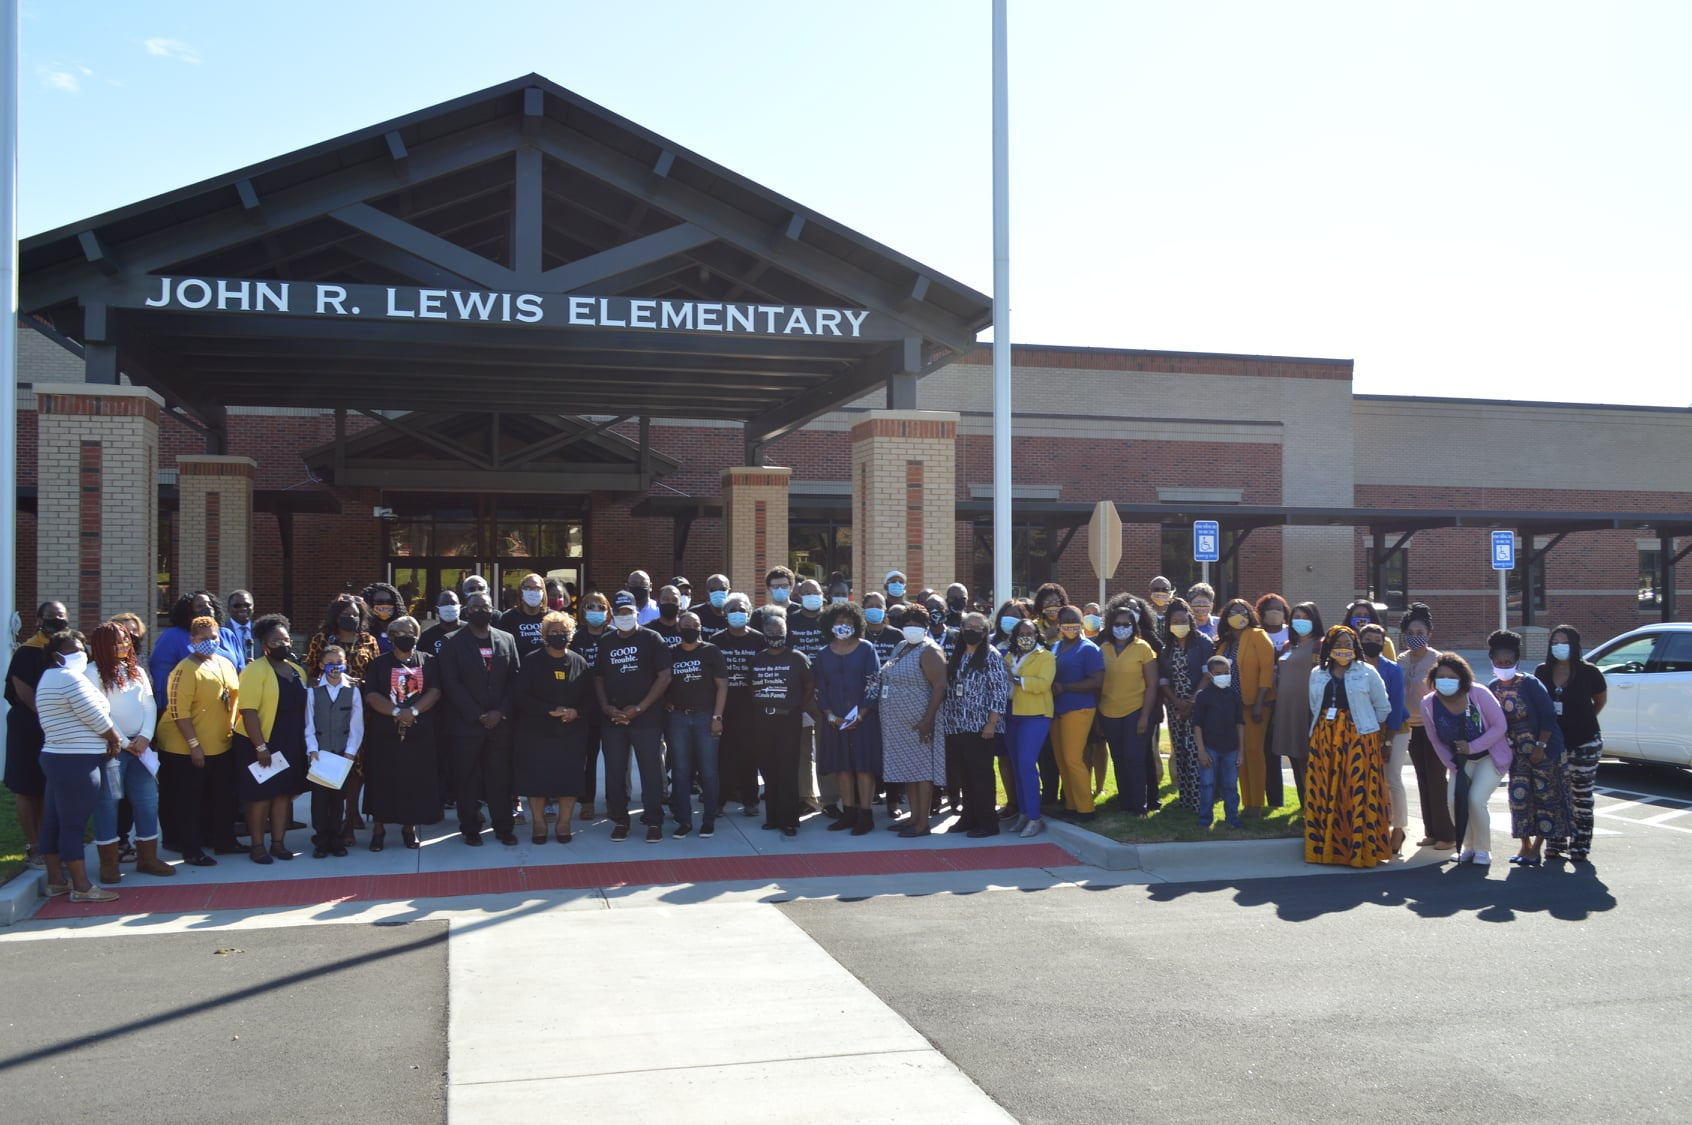 john-lewis-elementary-school-renaming-ceremony_21